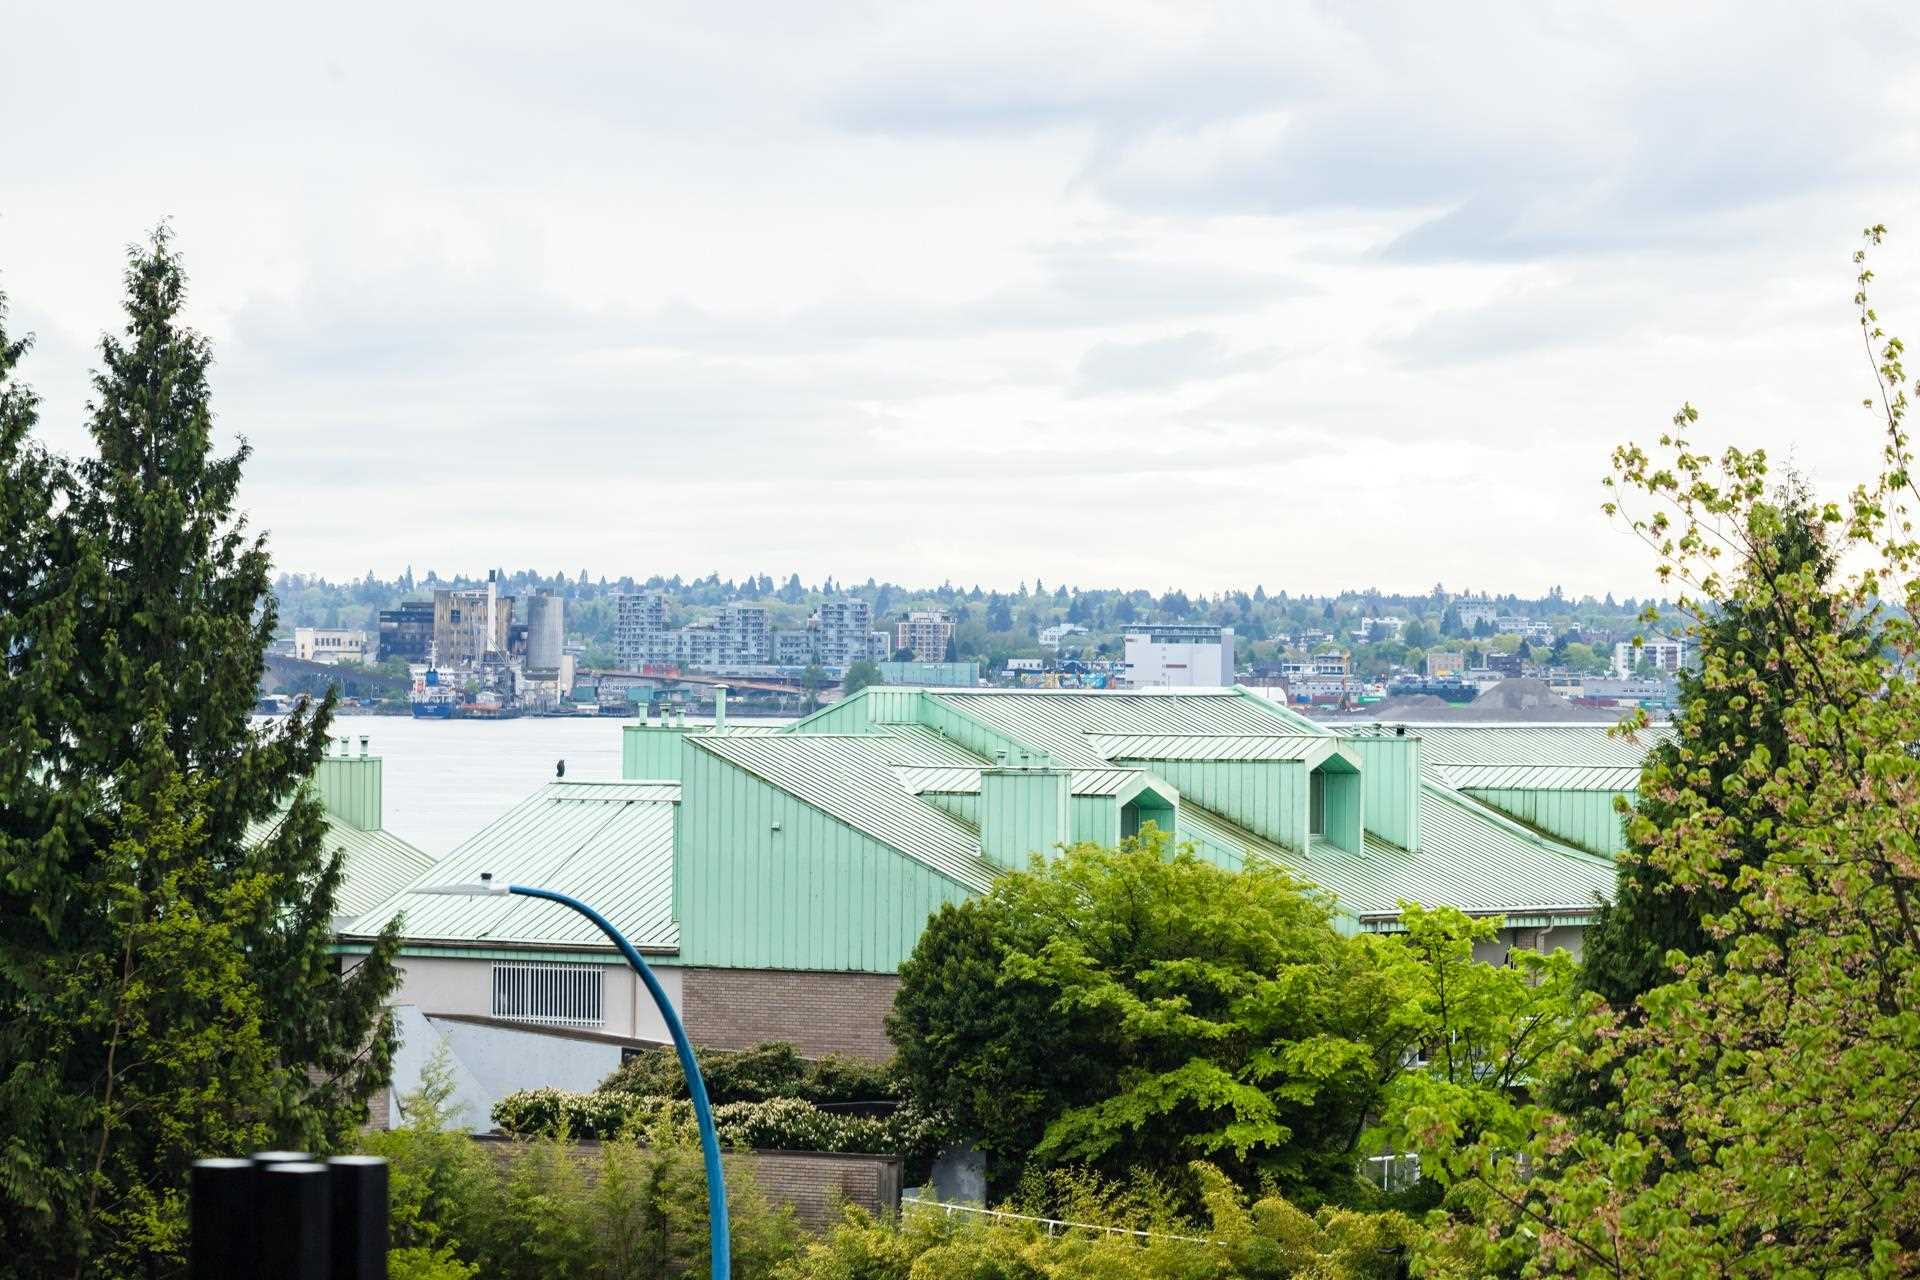 207 255 W 1ST STREET - Lower Lonsdale Apartment/Condo for sale, 2 Bedrooms (R2603882) - #23